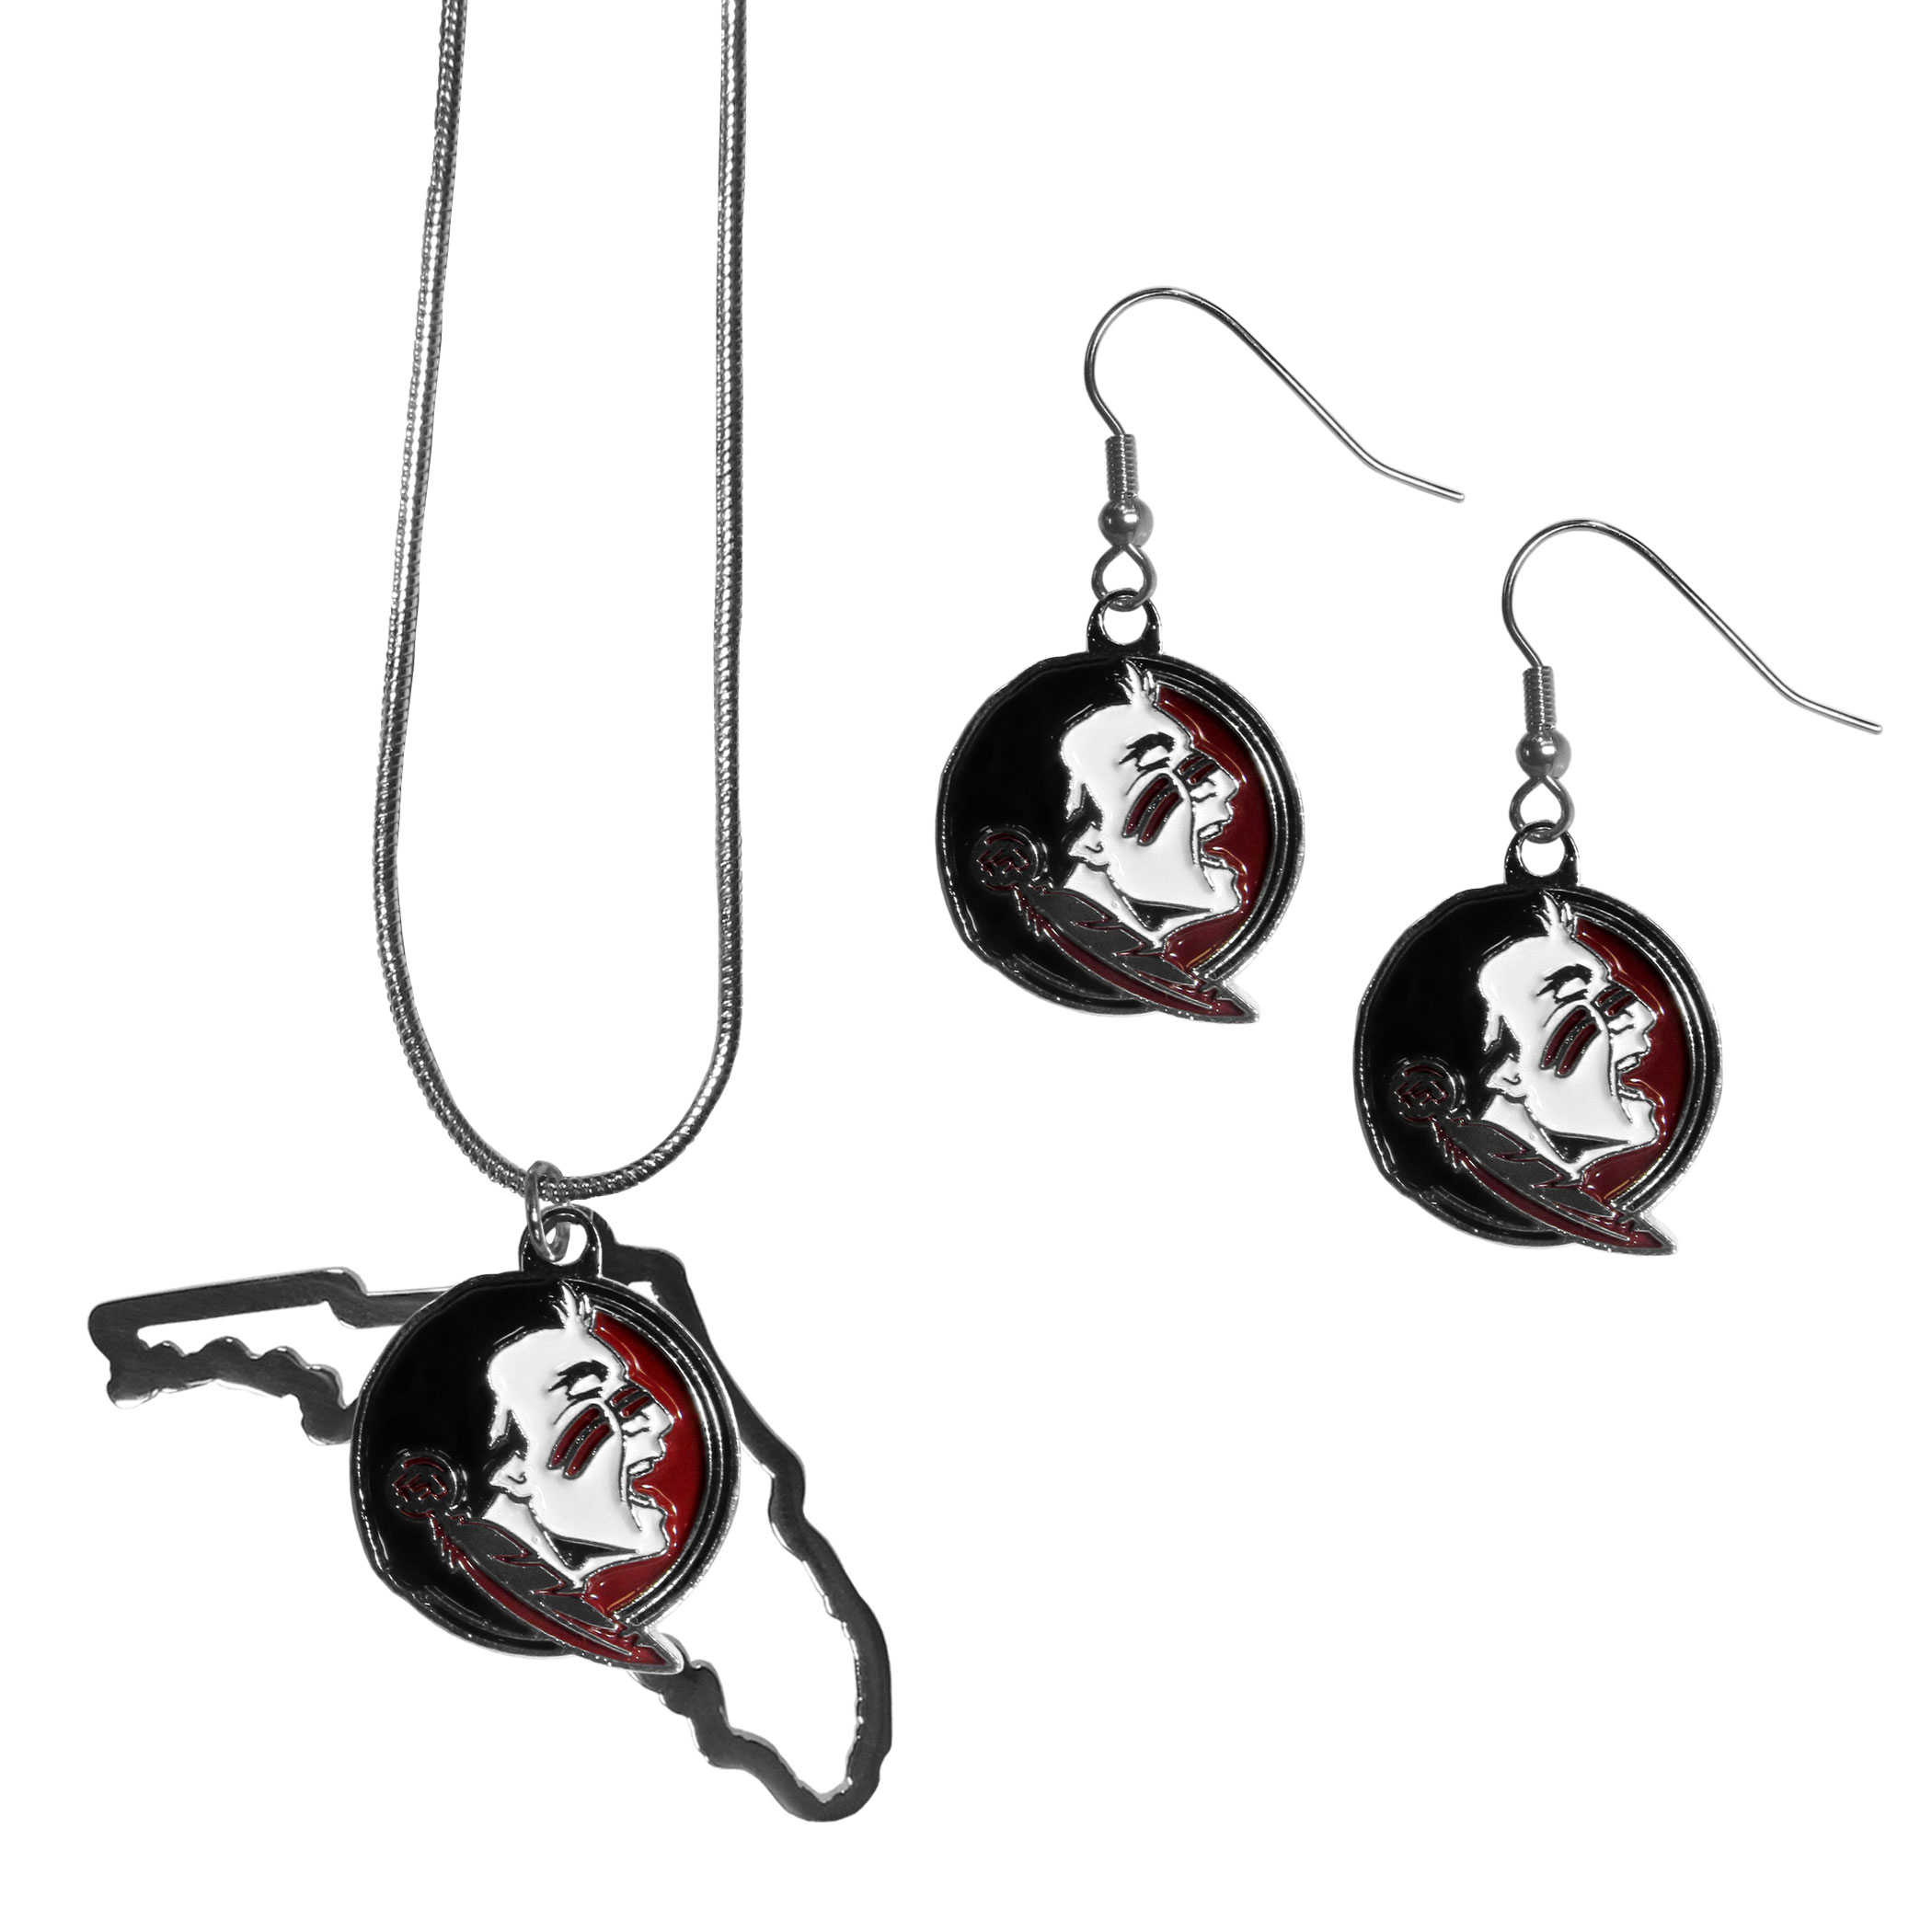 Florida St. Seminoles Dangle Earrings and State Necklace Set - Get in on the trend! State themes are a trend that just keeps getting more popular and this jewelry set takes the state style and give it a sporty twist with a Florida St. Seminoles necklace that features an Arizona state outline charm paired with a beautiful team charm and matching team charm dangle earrings. The earrings feature hypoallergenic fishhook posts that are nickel free.